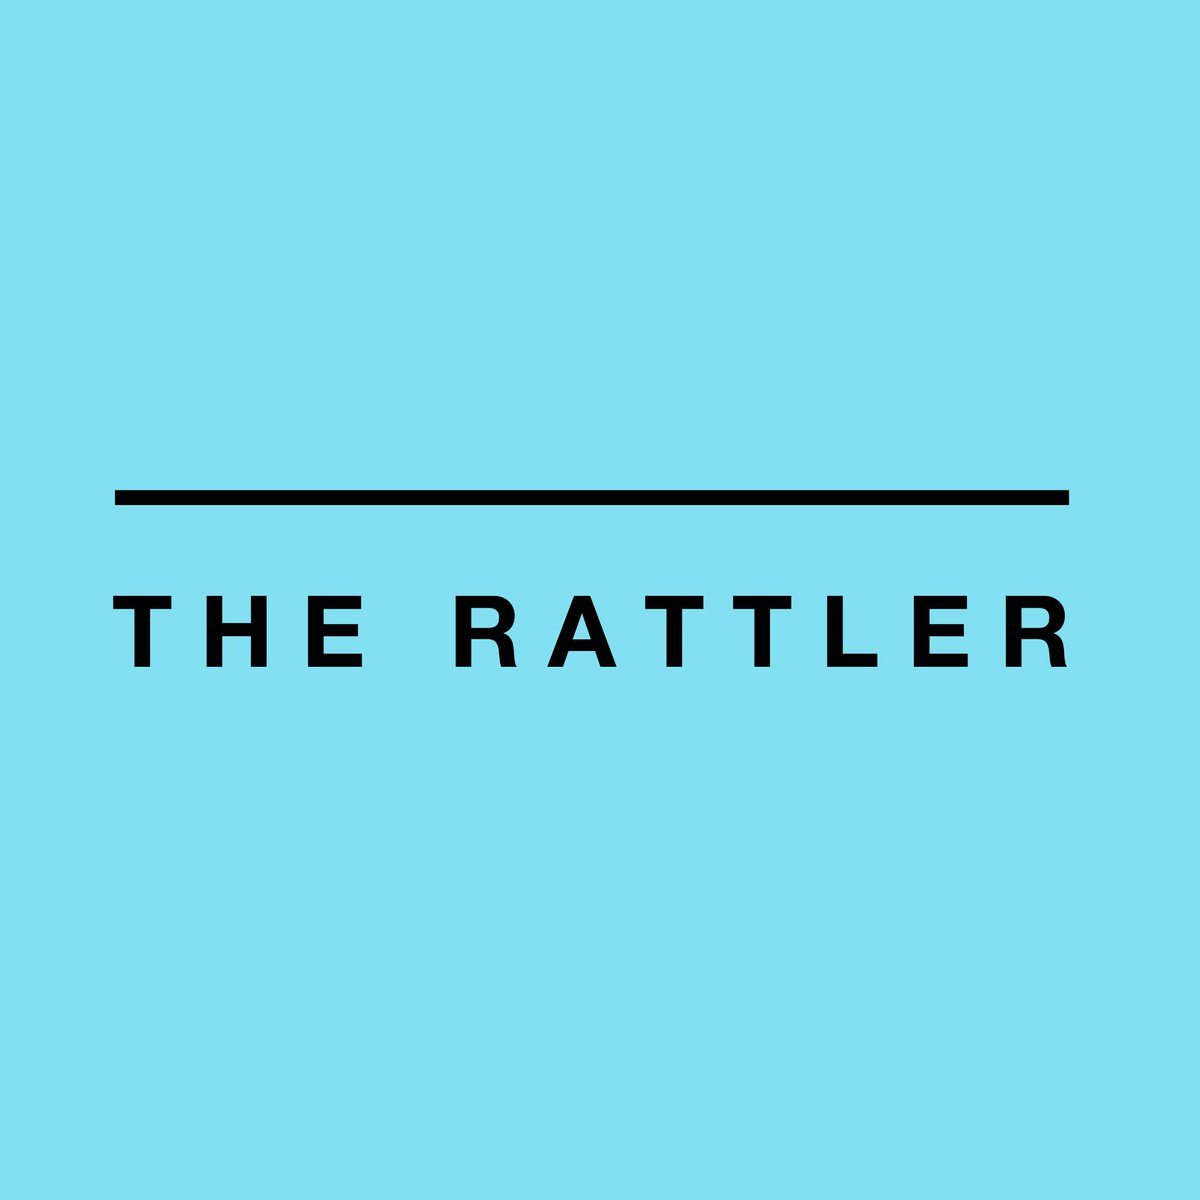 Introducing The Rattler: a new regular-ish column for  on all kinds of music & cultural stuff  https://t.co/UlcUdNfCM5